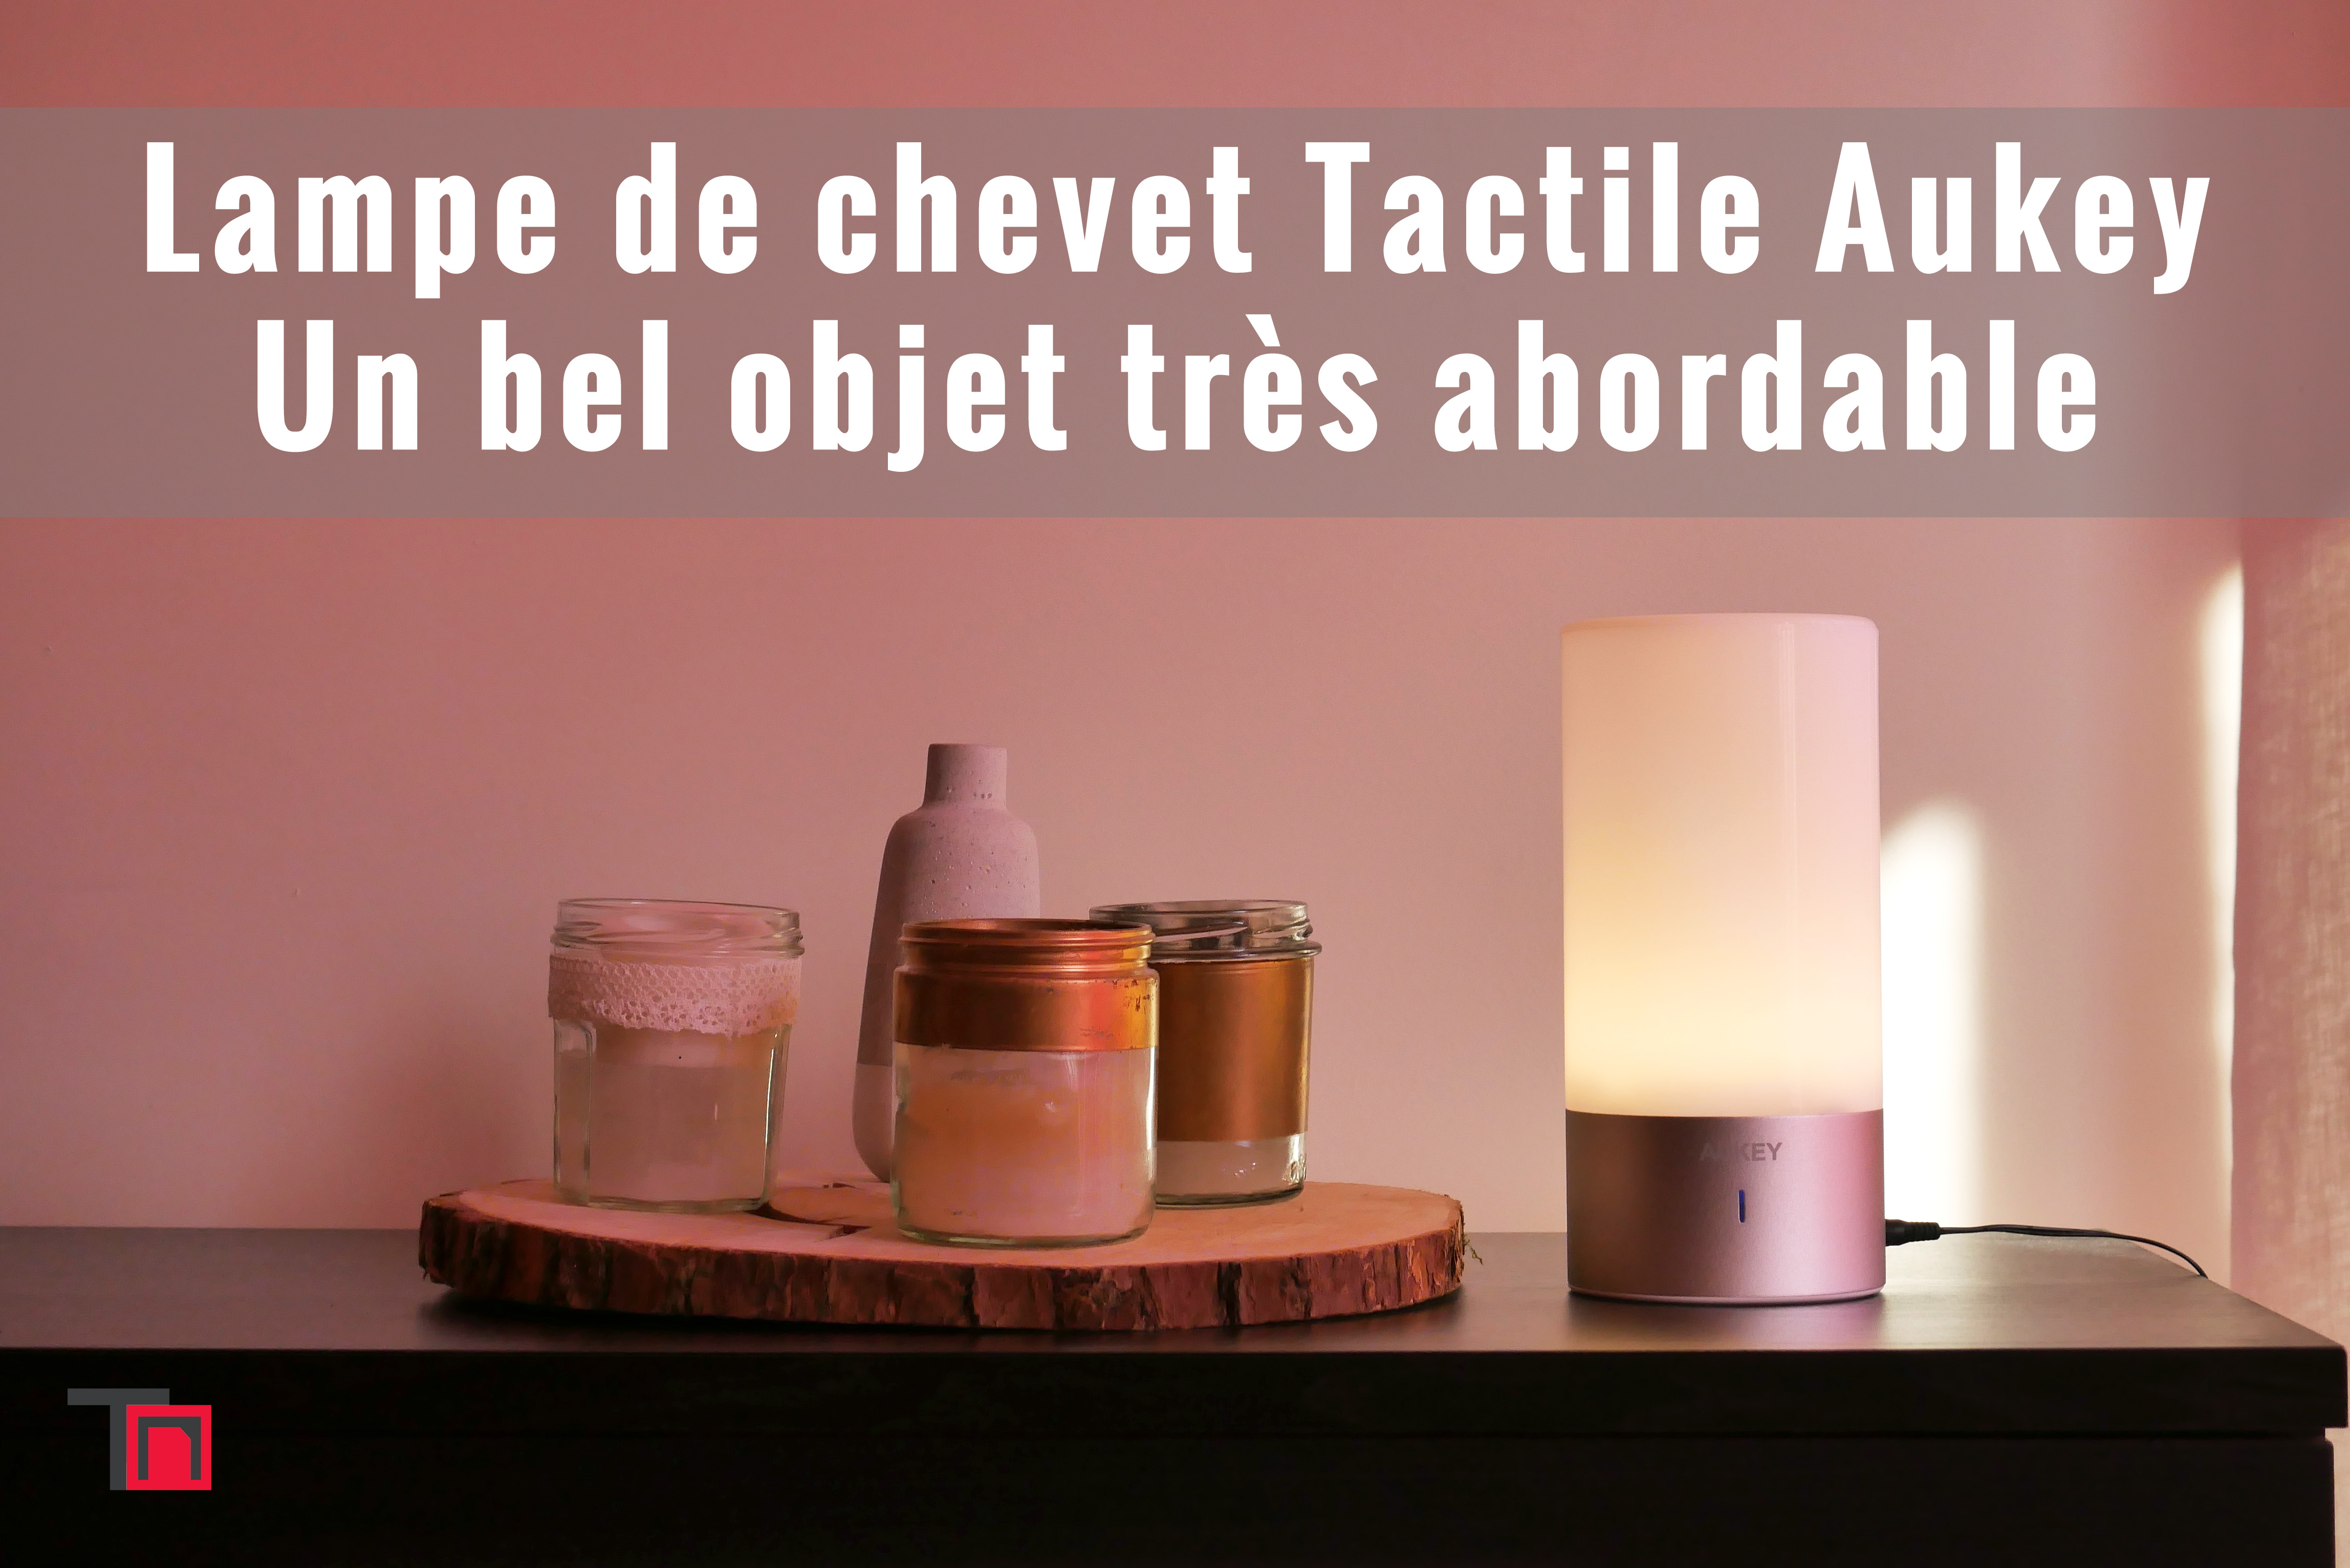 lampe de chevet tactile sensitive aukey un bel objet tr s abordable 24. Black Bedroom Furniture Sets. Home Design Ideas